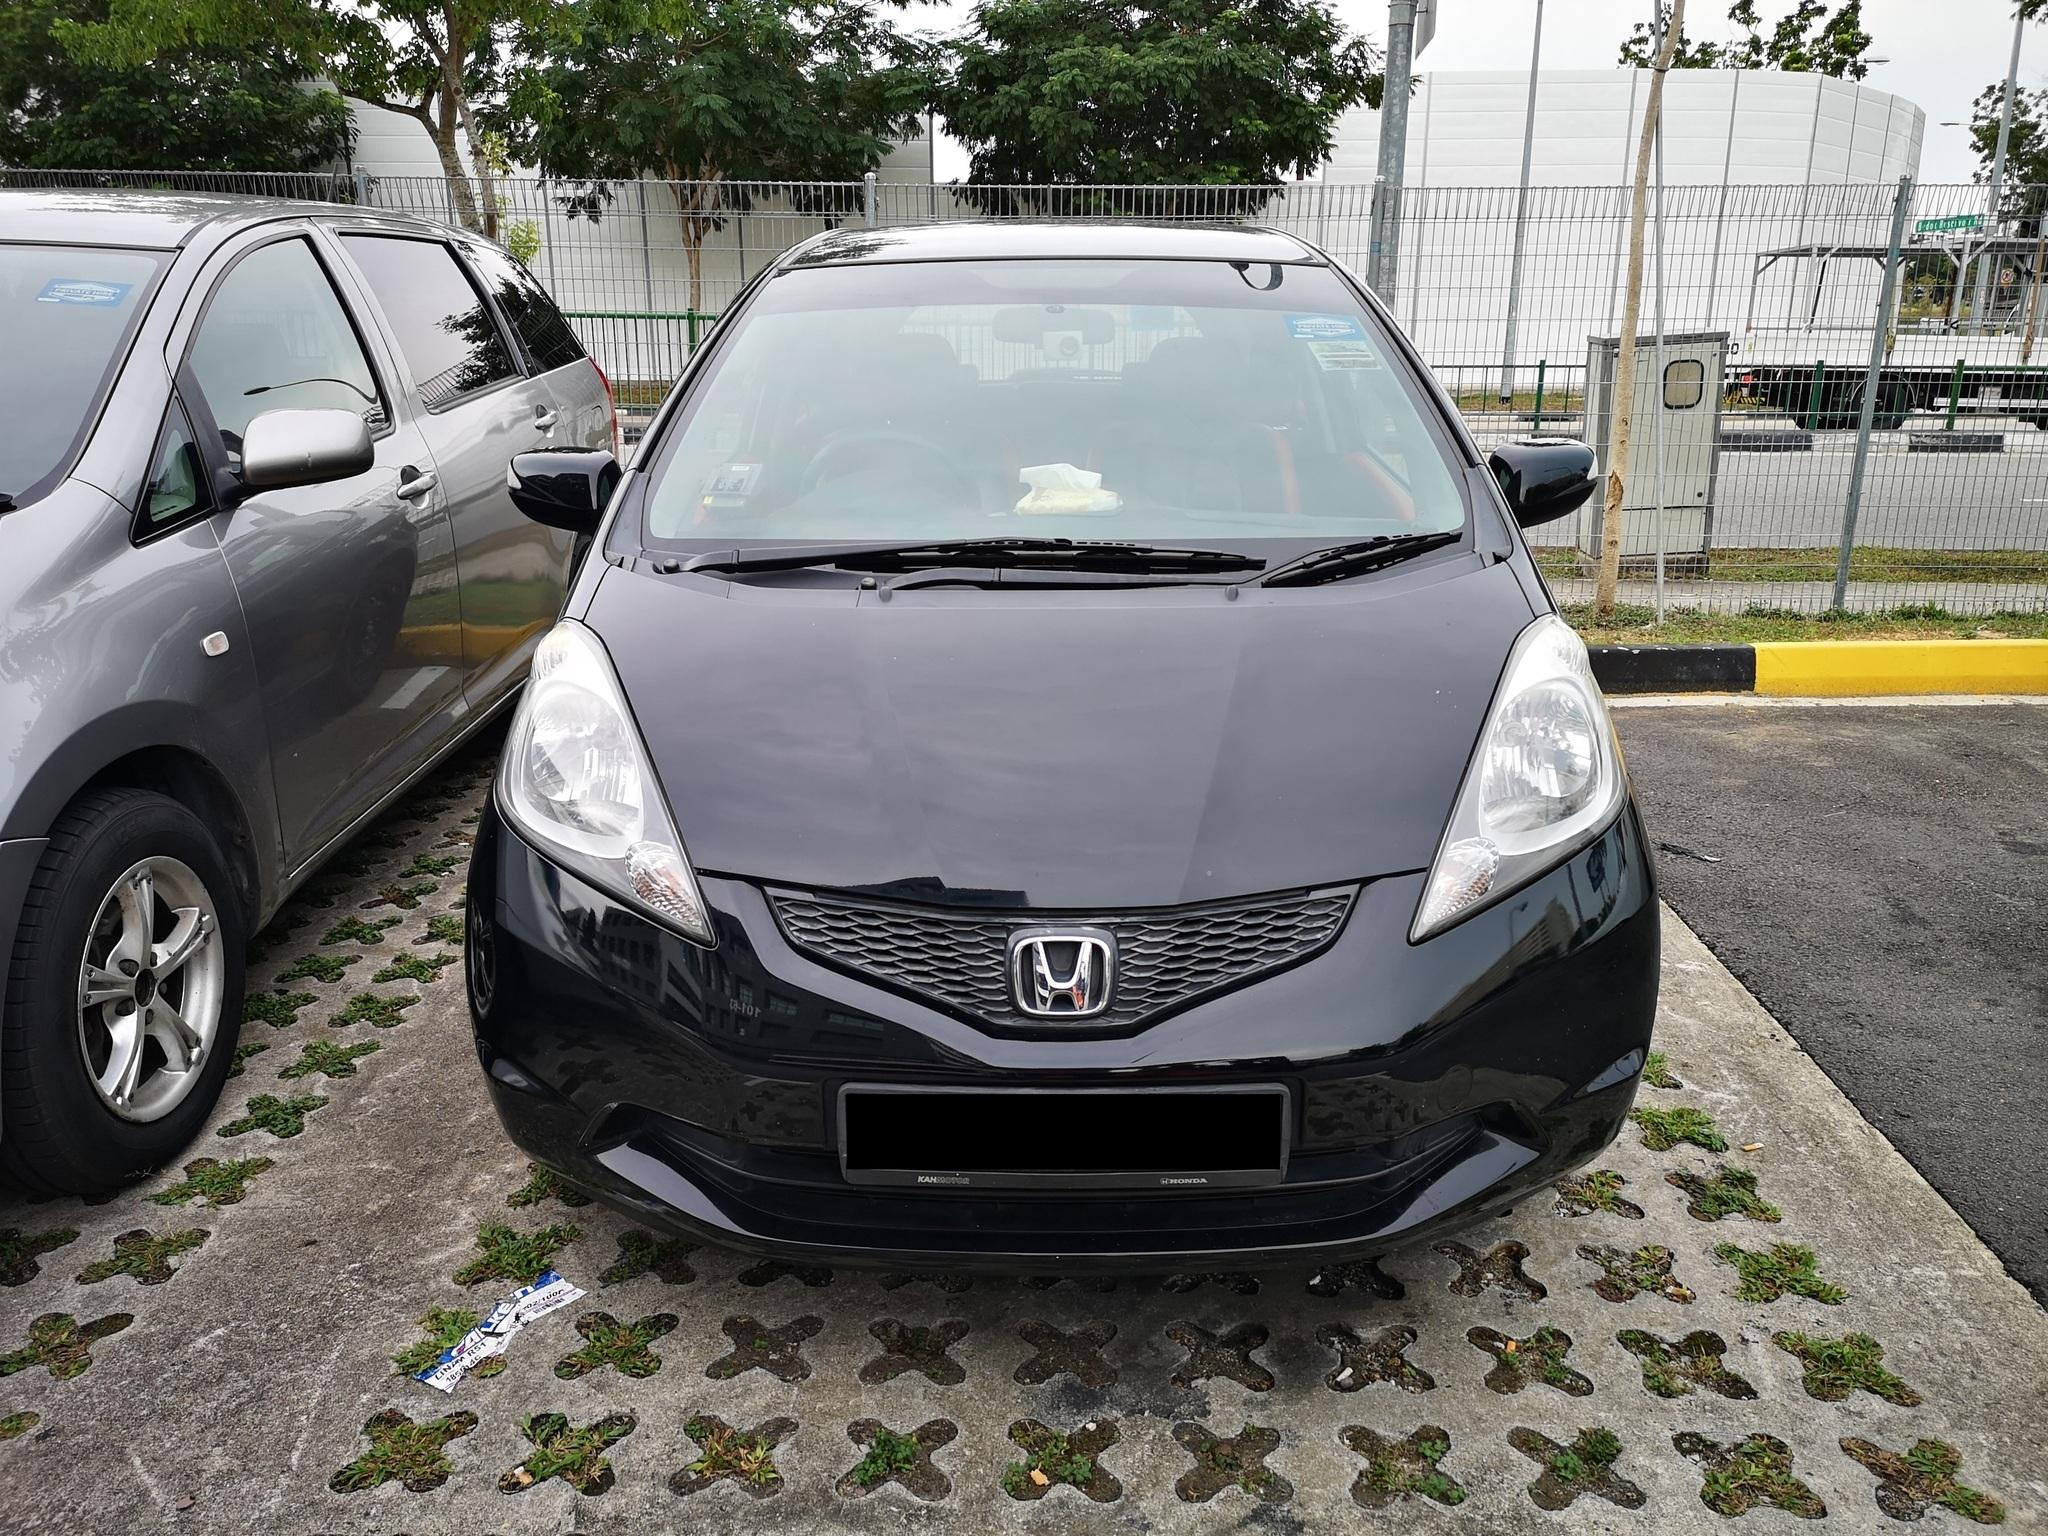 Car for Rent Grab No Contract